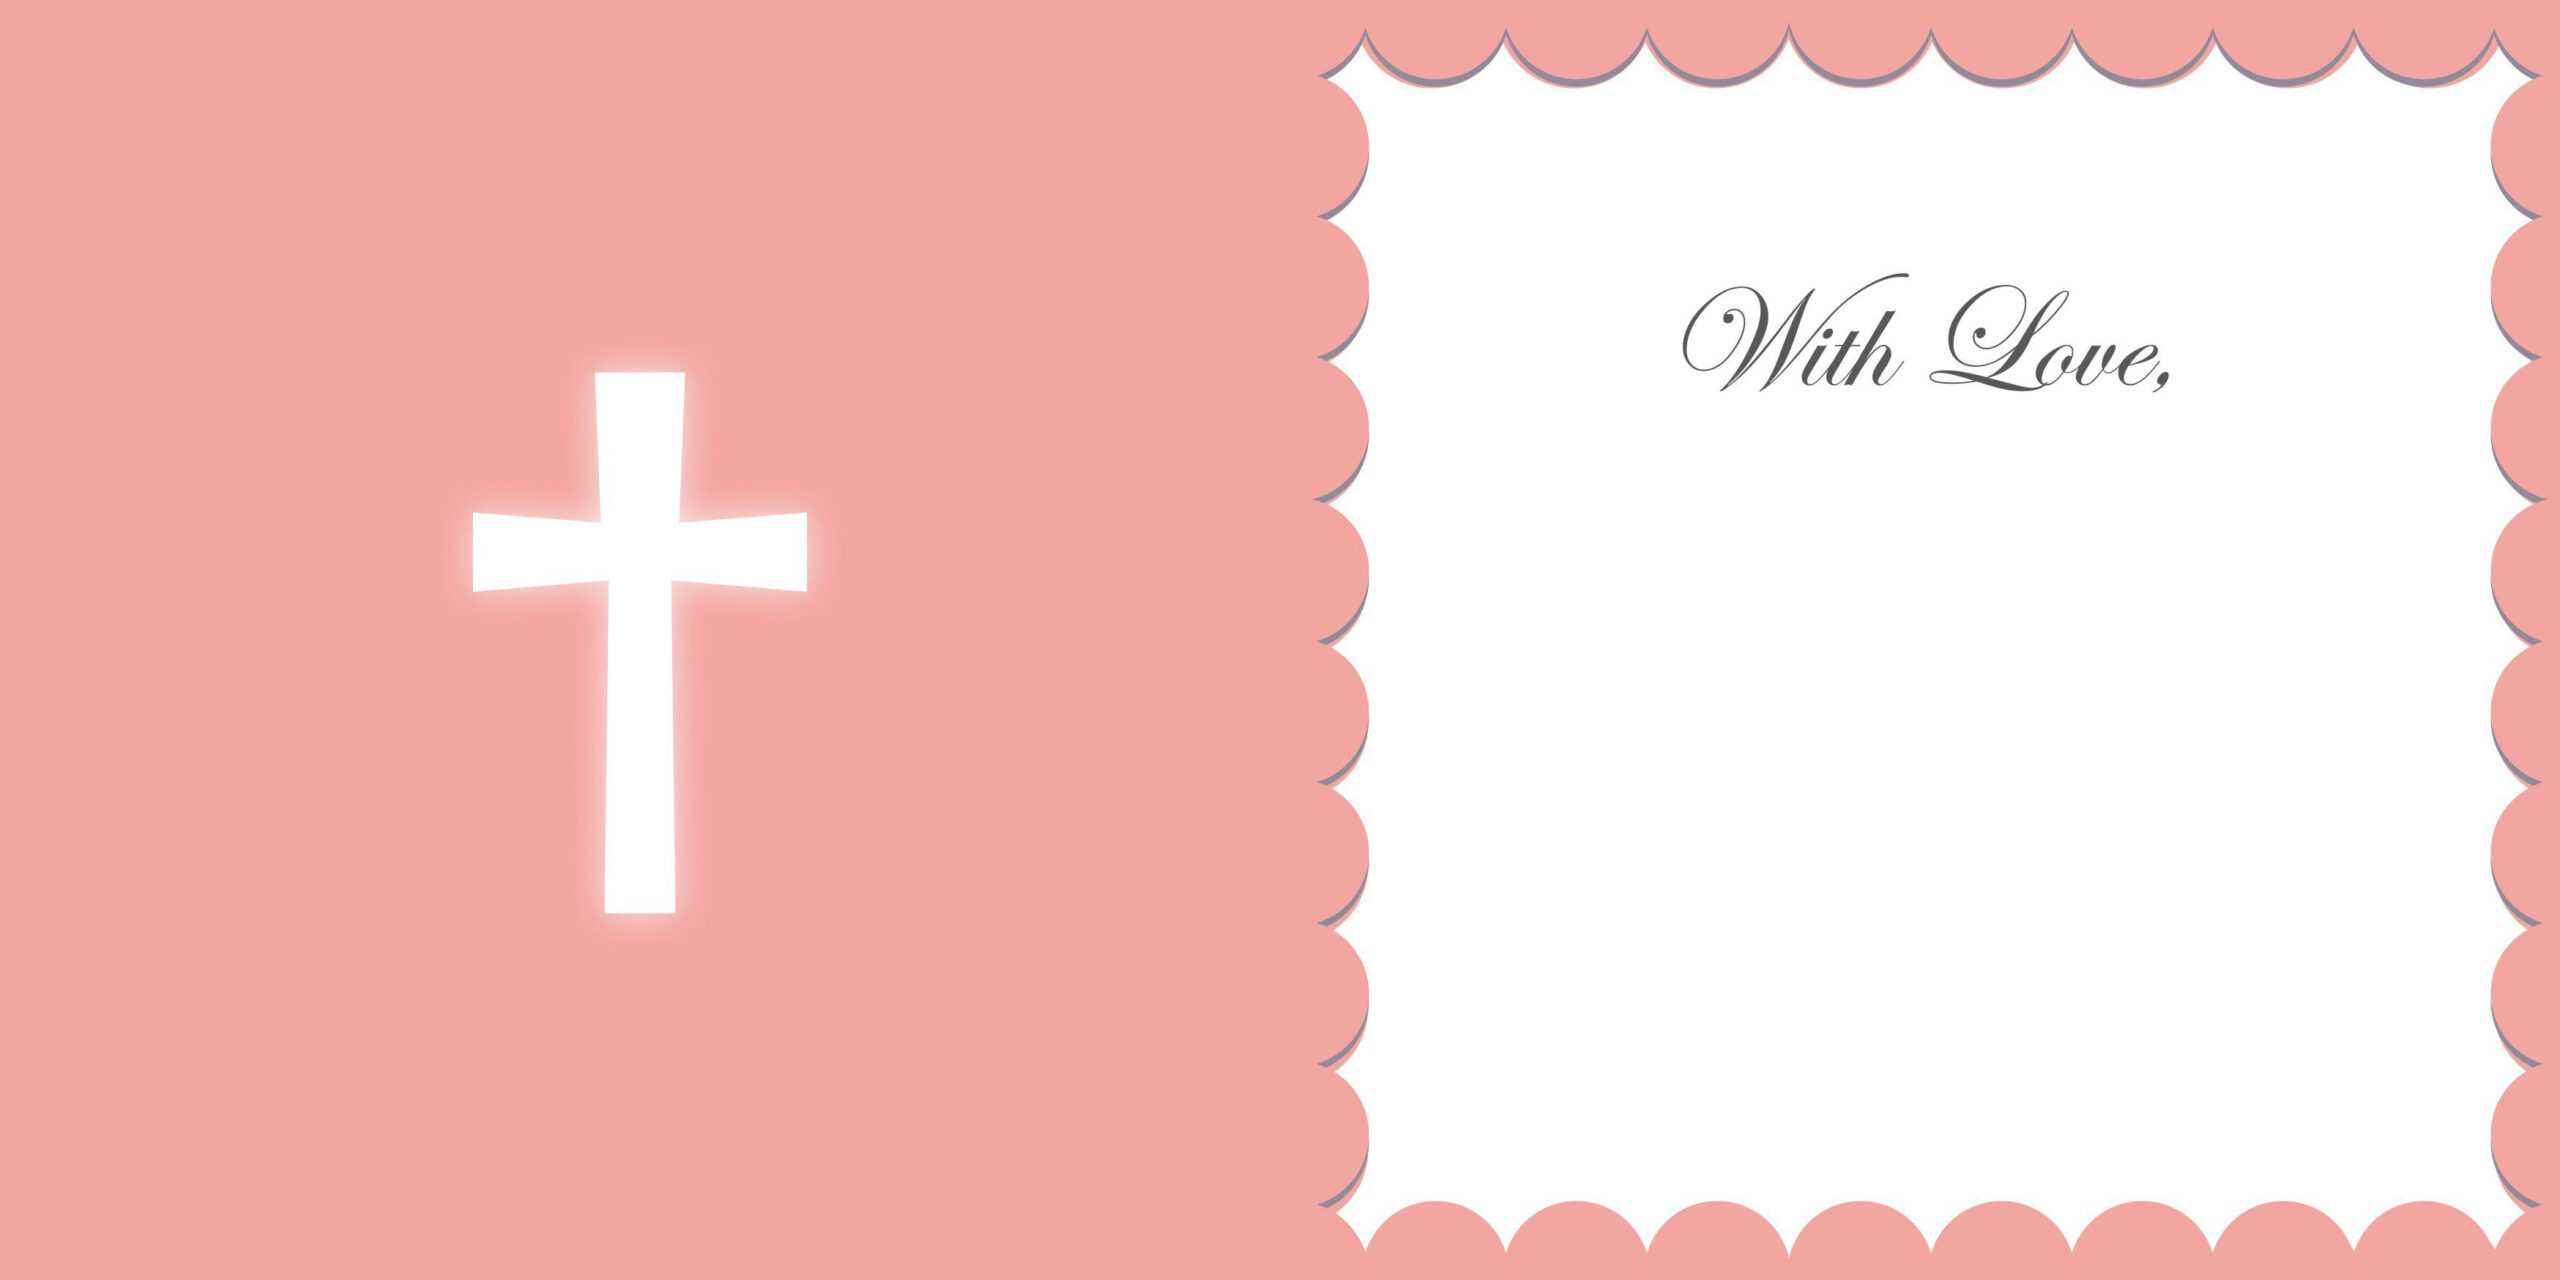 Baptism Invitation Templates Free Download - Calep Intended For Blank Christening Invitation Templates